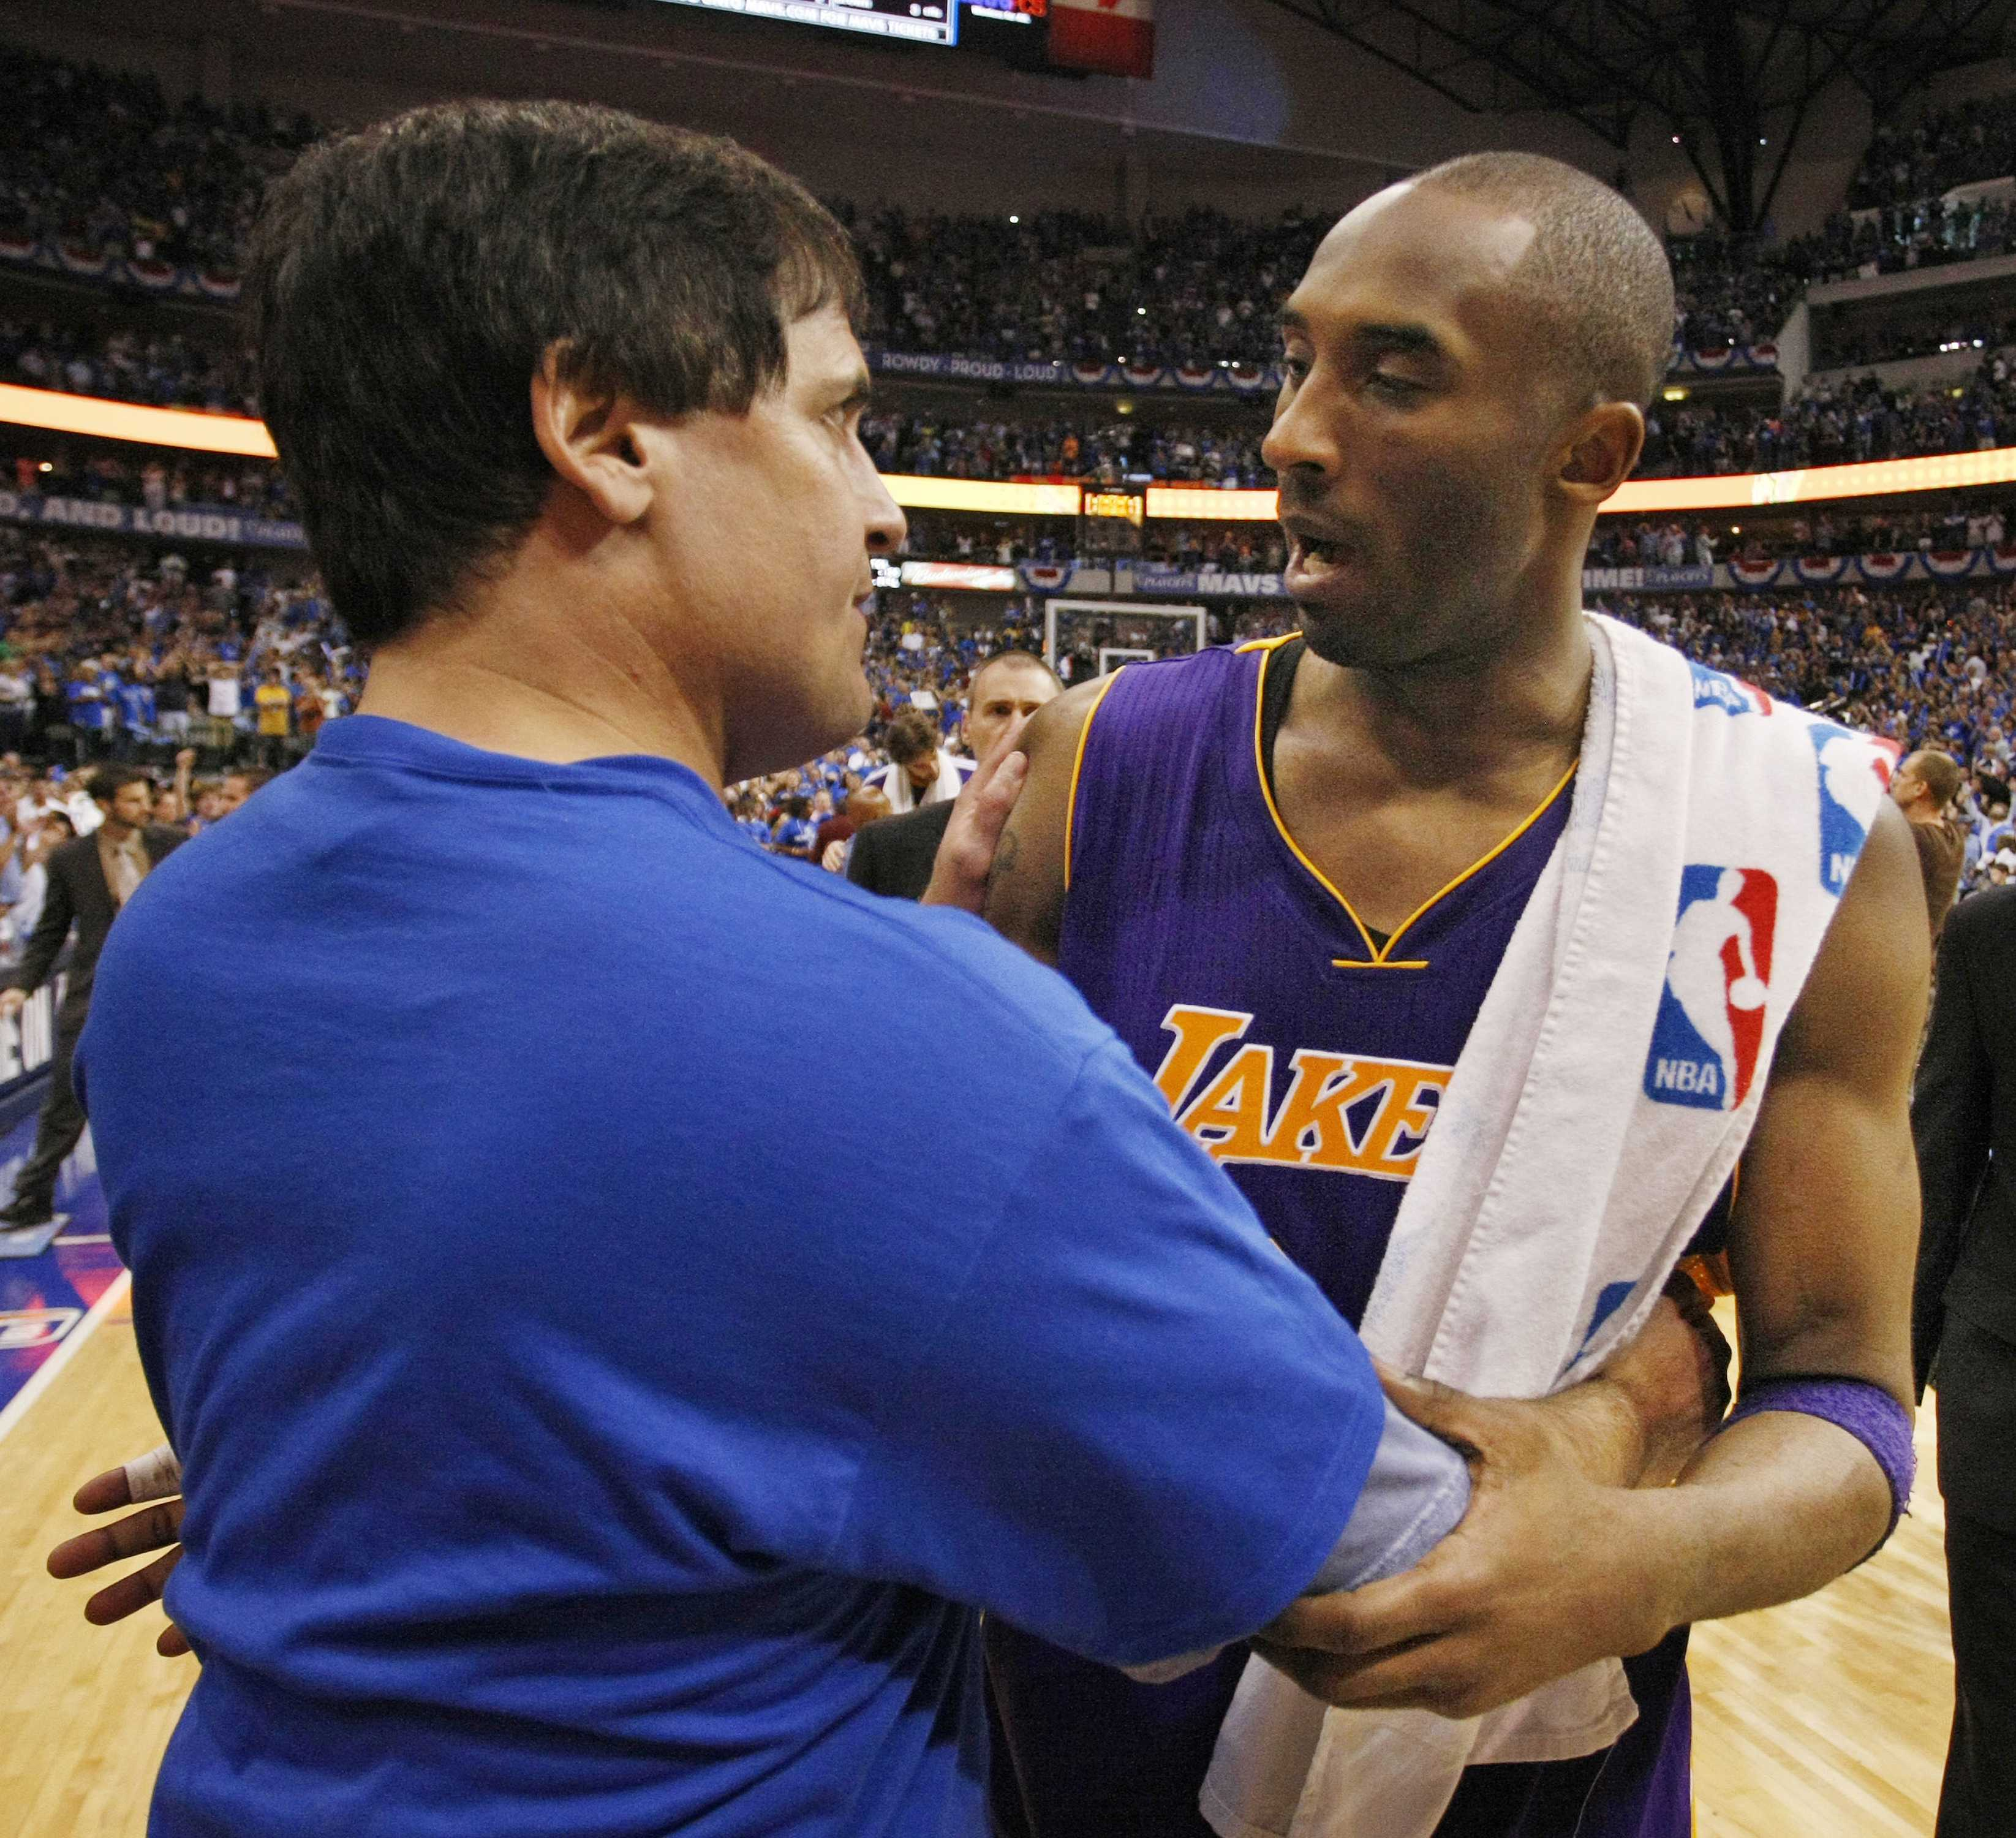 Dallas Mavericks owner Mark Cuban meets Los Angeles Lakers shooting guard Kobe Bryant (24) at the end of Game 4 of the NBA Western Conference Playoffs at the American Airlines Center, Sunday, May 8, 2011 in Dallas, Texas. The Dallas Mavericks defeated the Los Angeles Lakers, 122-86. (Paul Moseley/Fort Worth Star-Telegram/MCT)